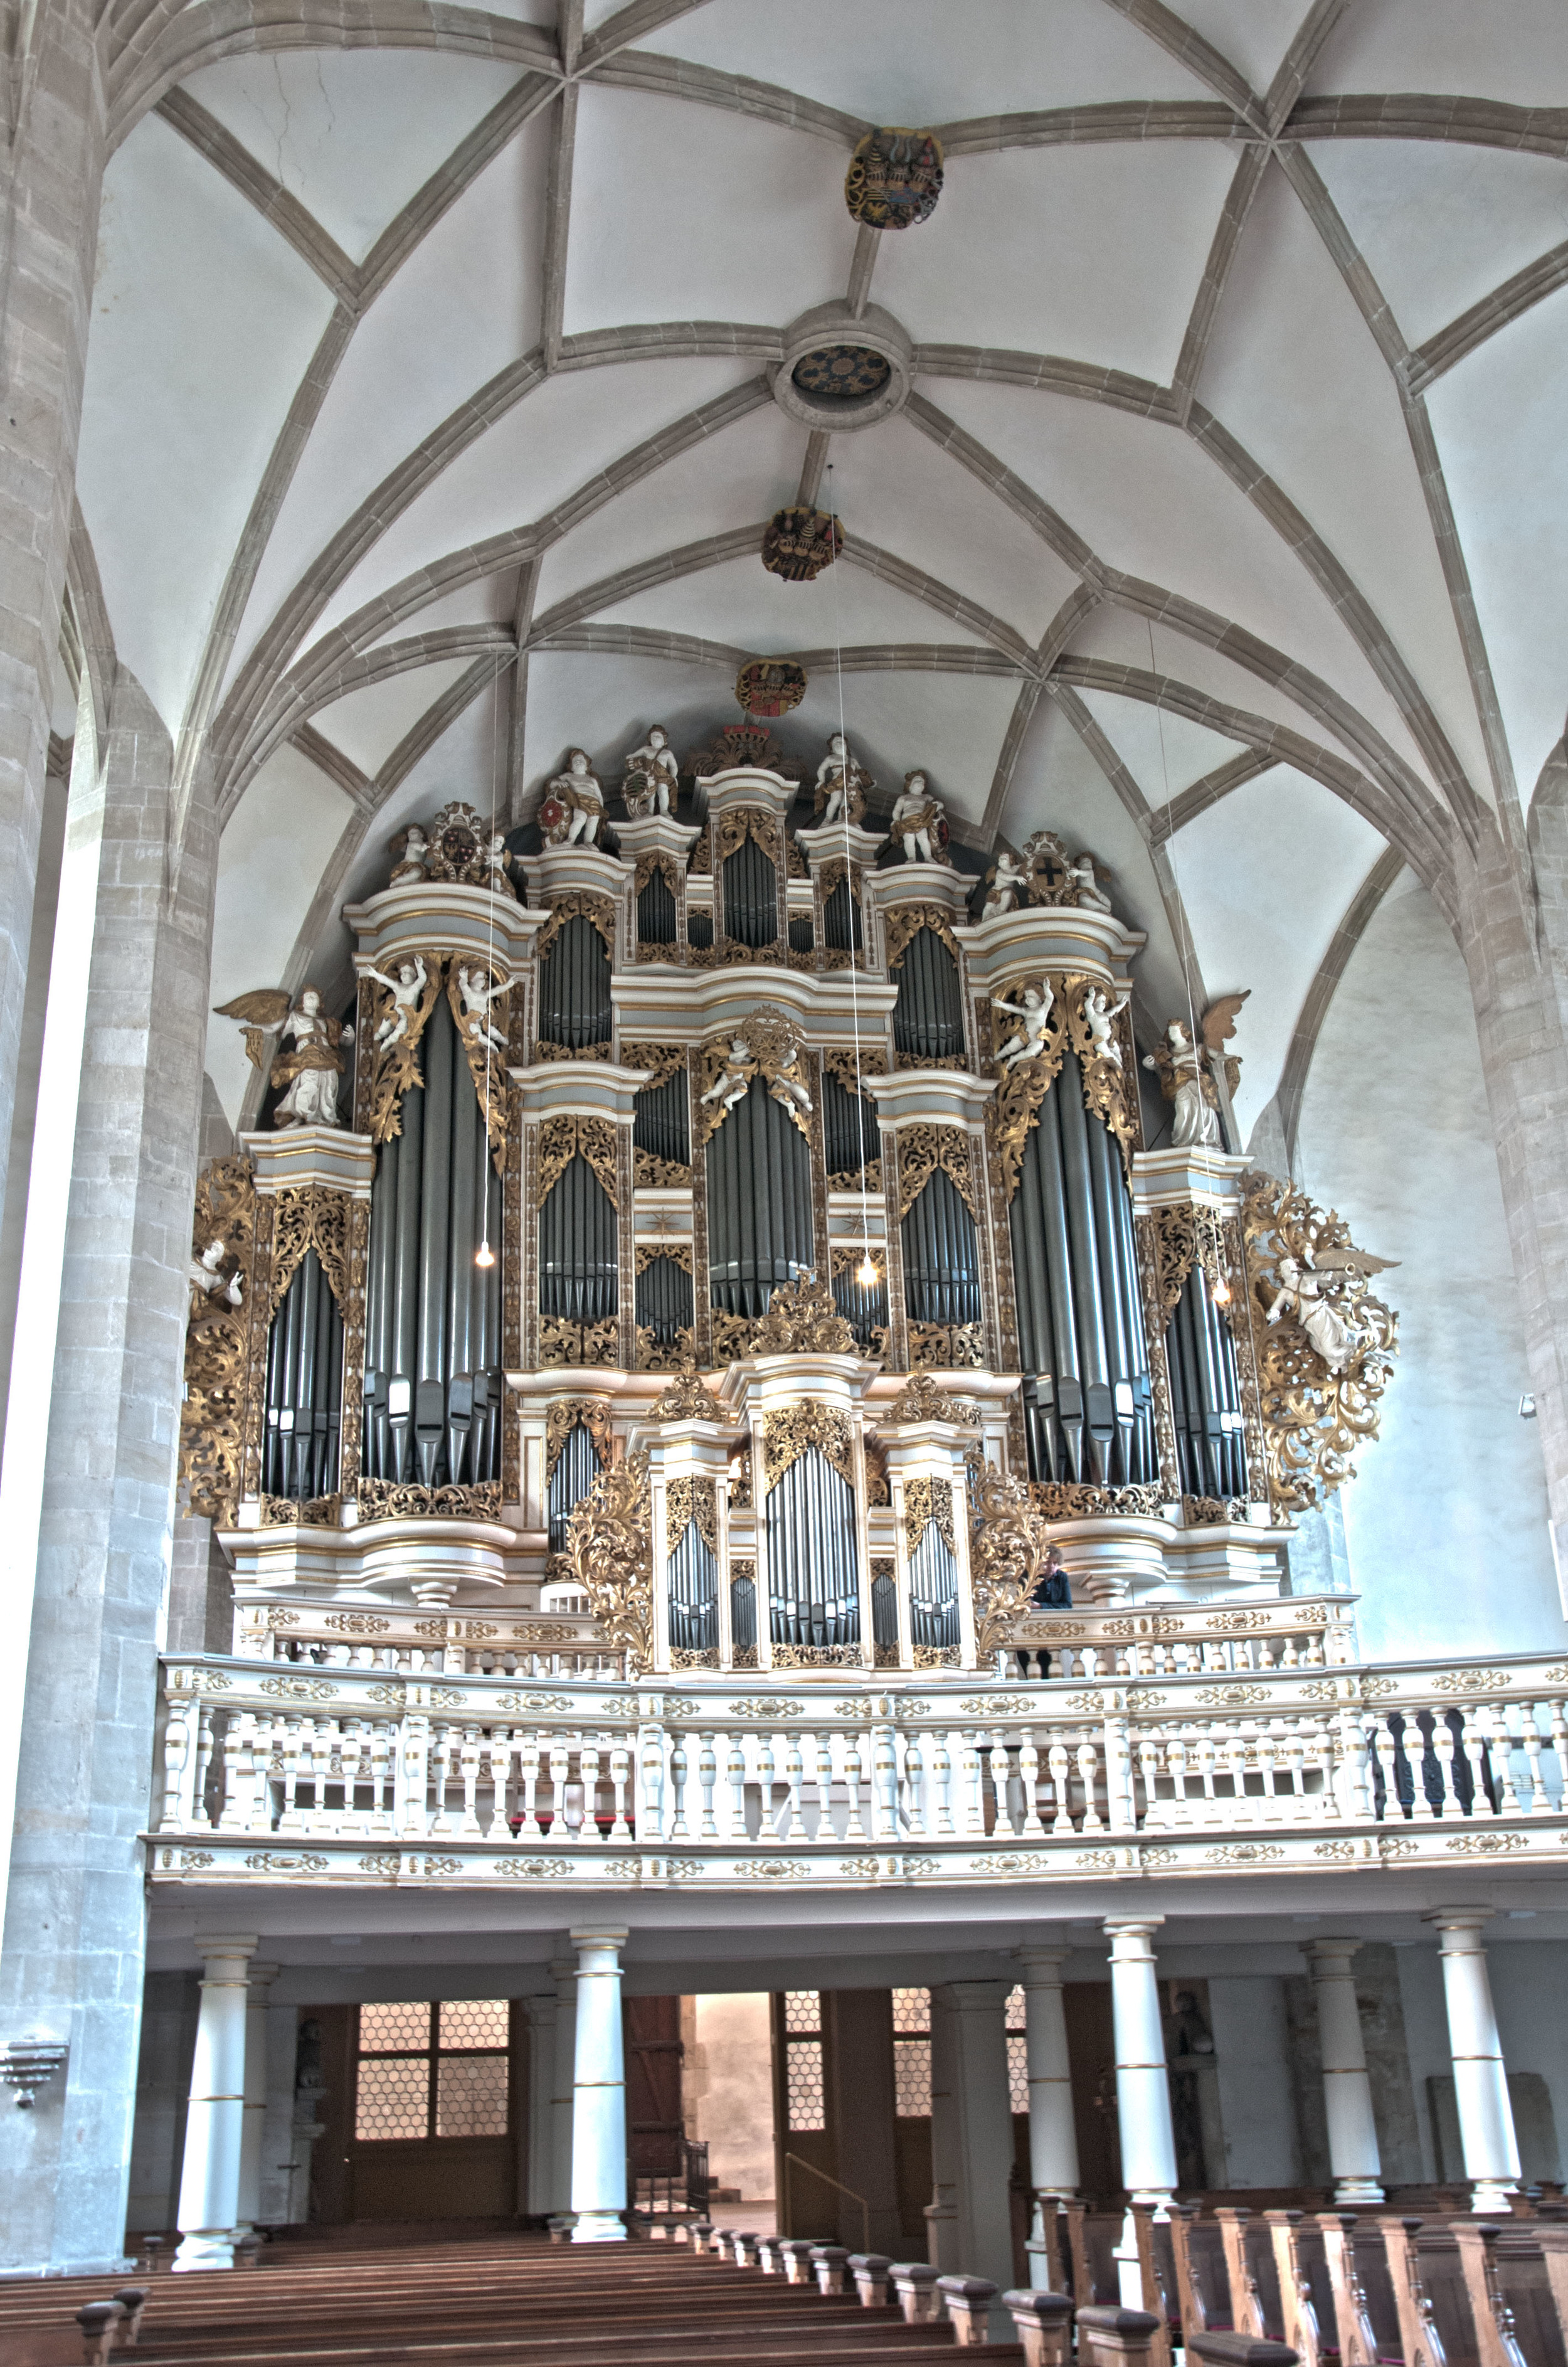 Liszt's mammoth Ladegast Organ in the Merseburg Dom